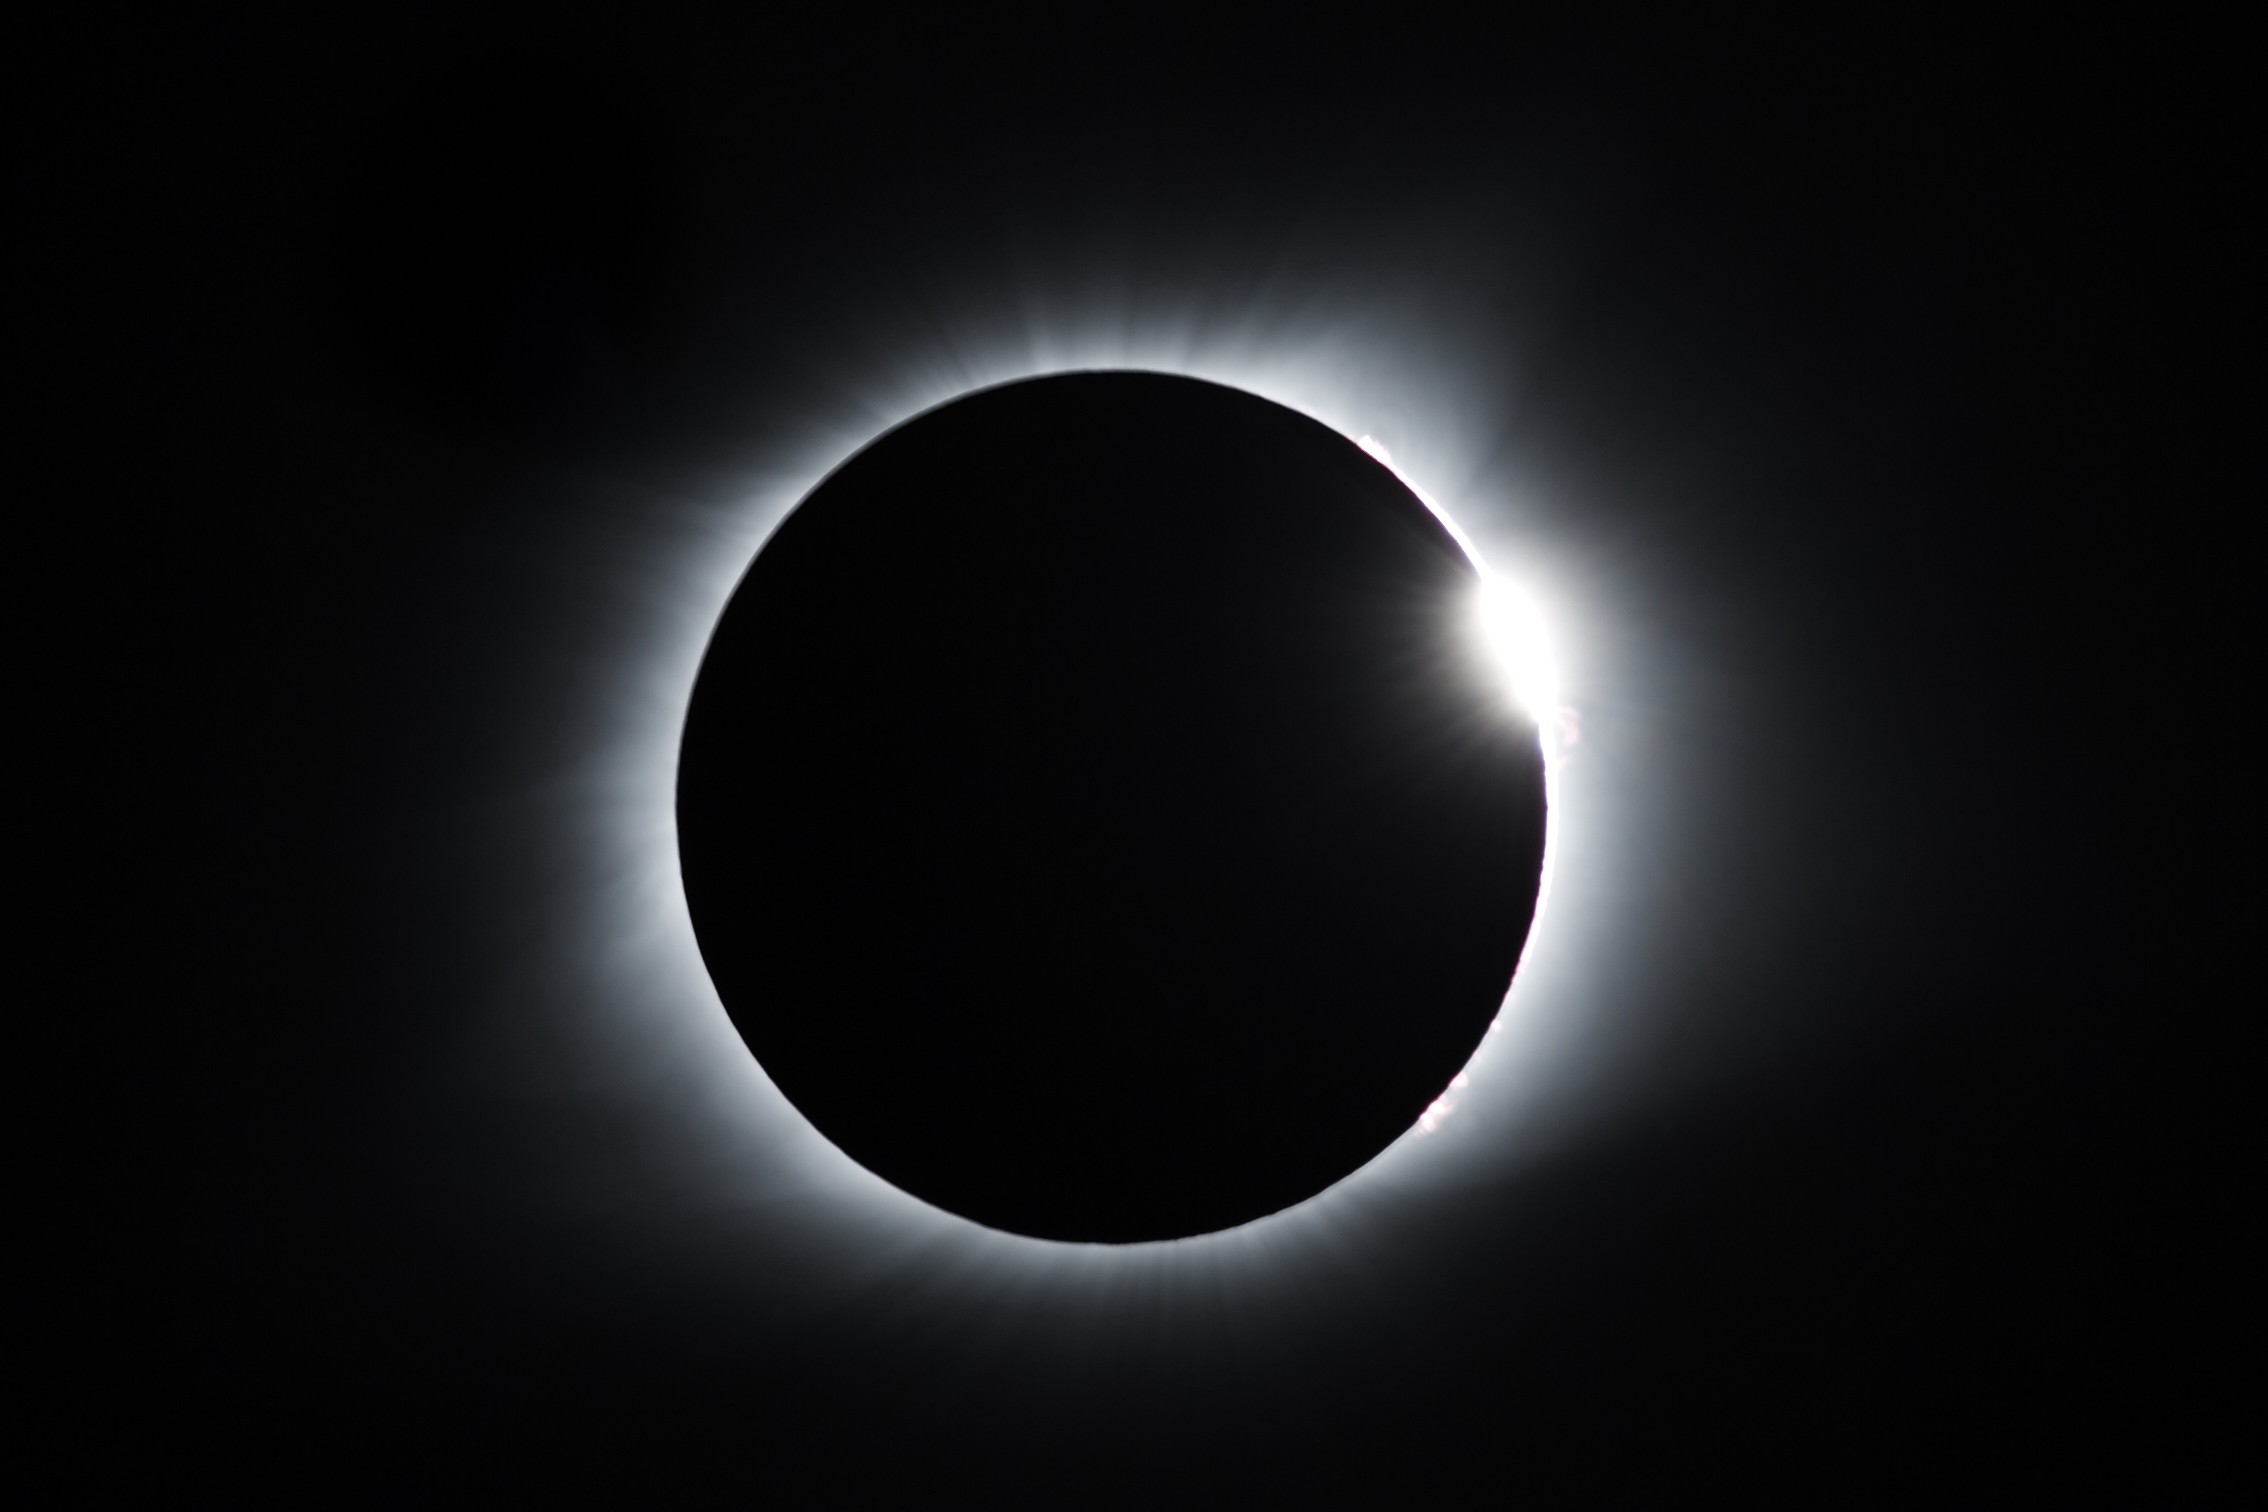 Black sky with a total eclipse.